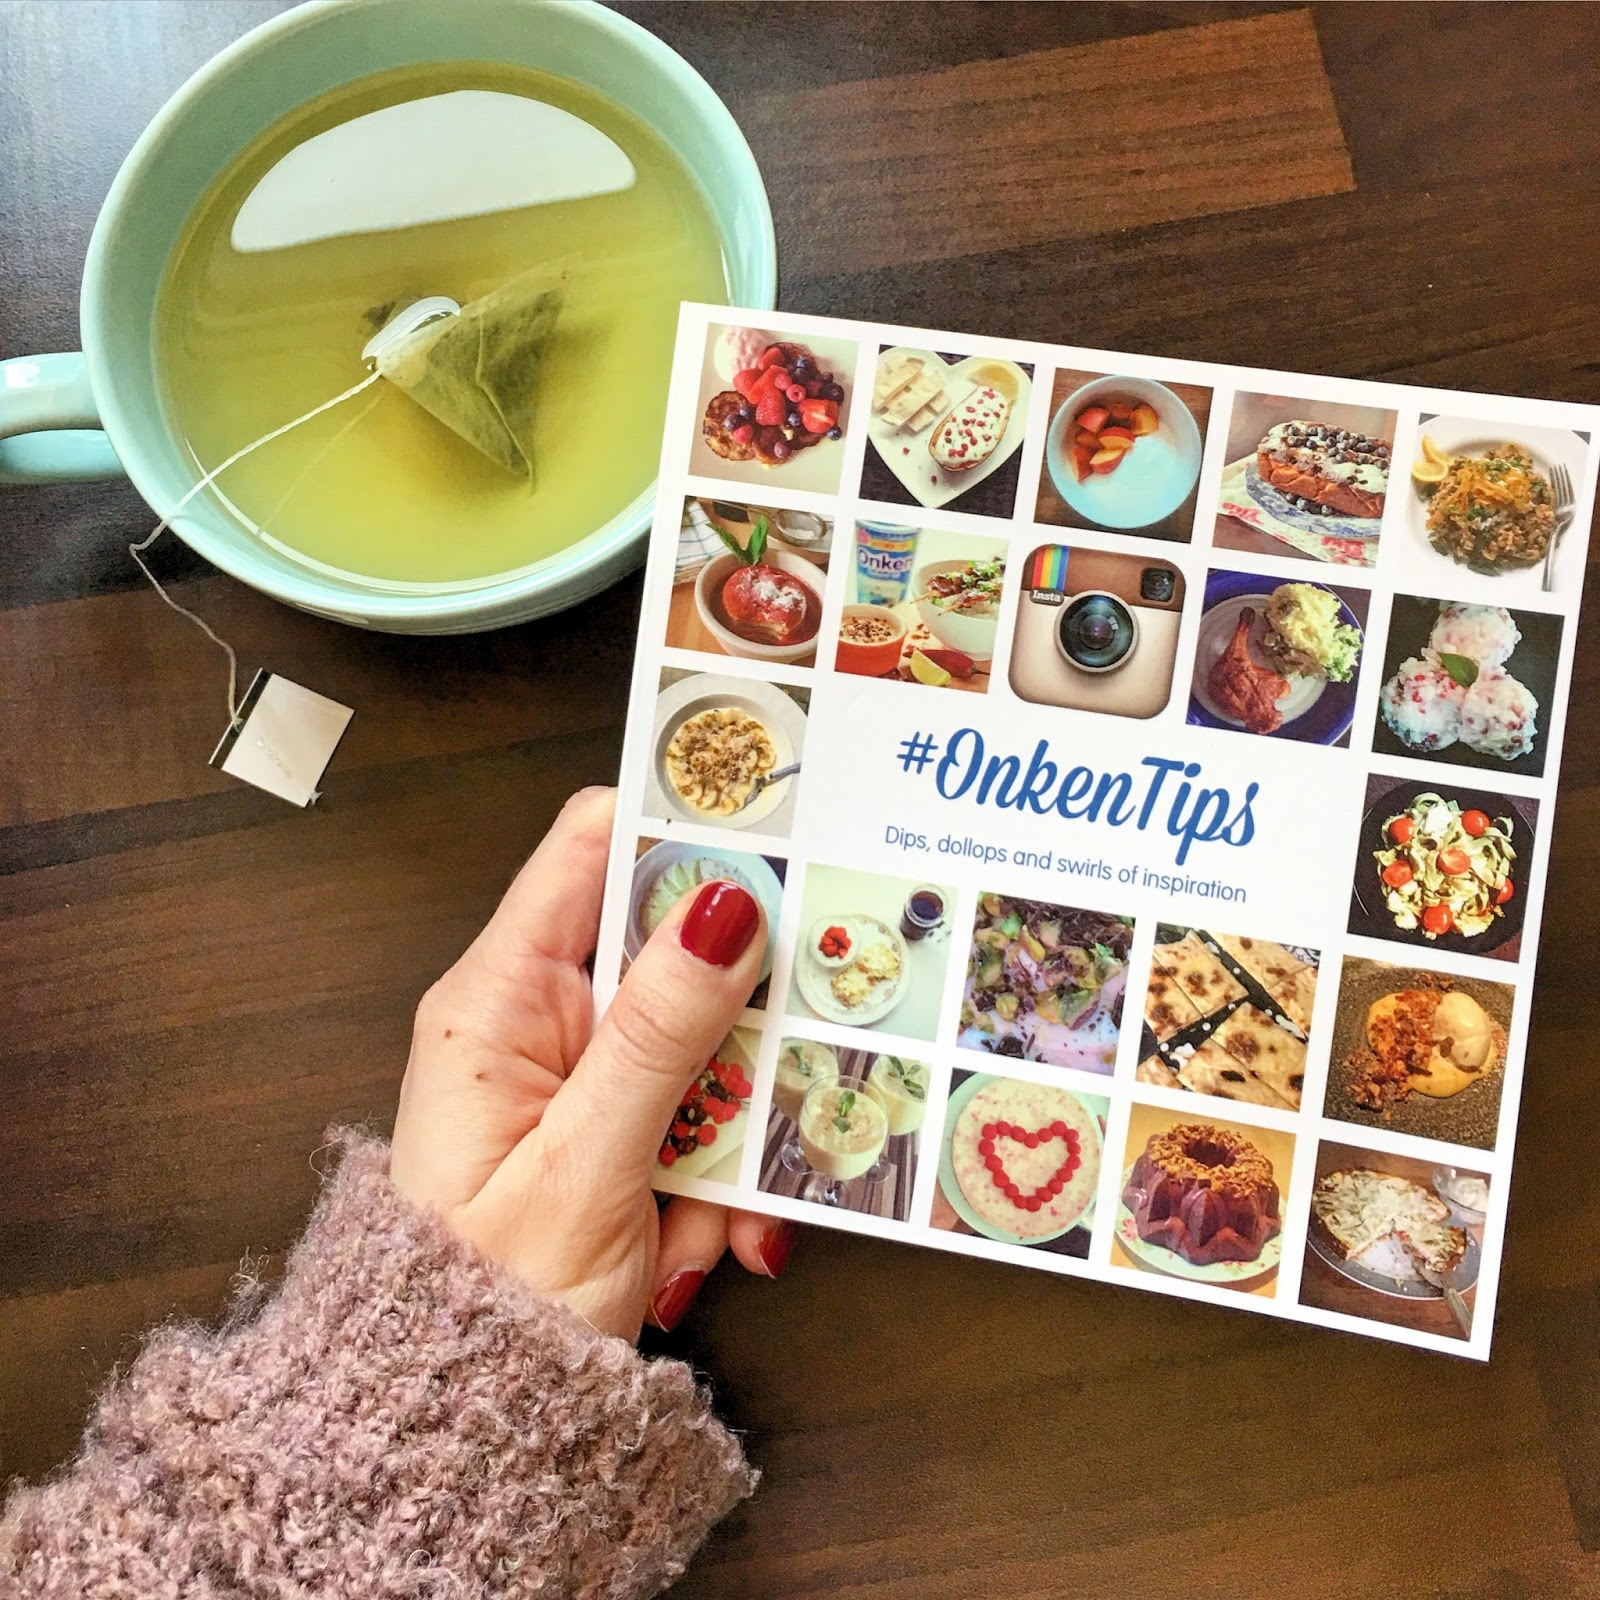 Onkentips instagram recipe book sophie loves food onkentips instagram recipe book forumfinder Image collections